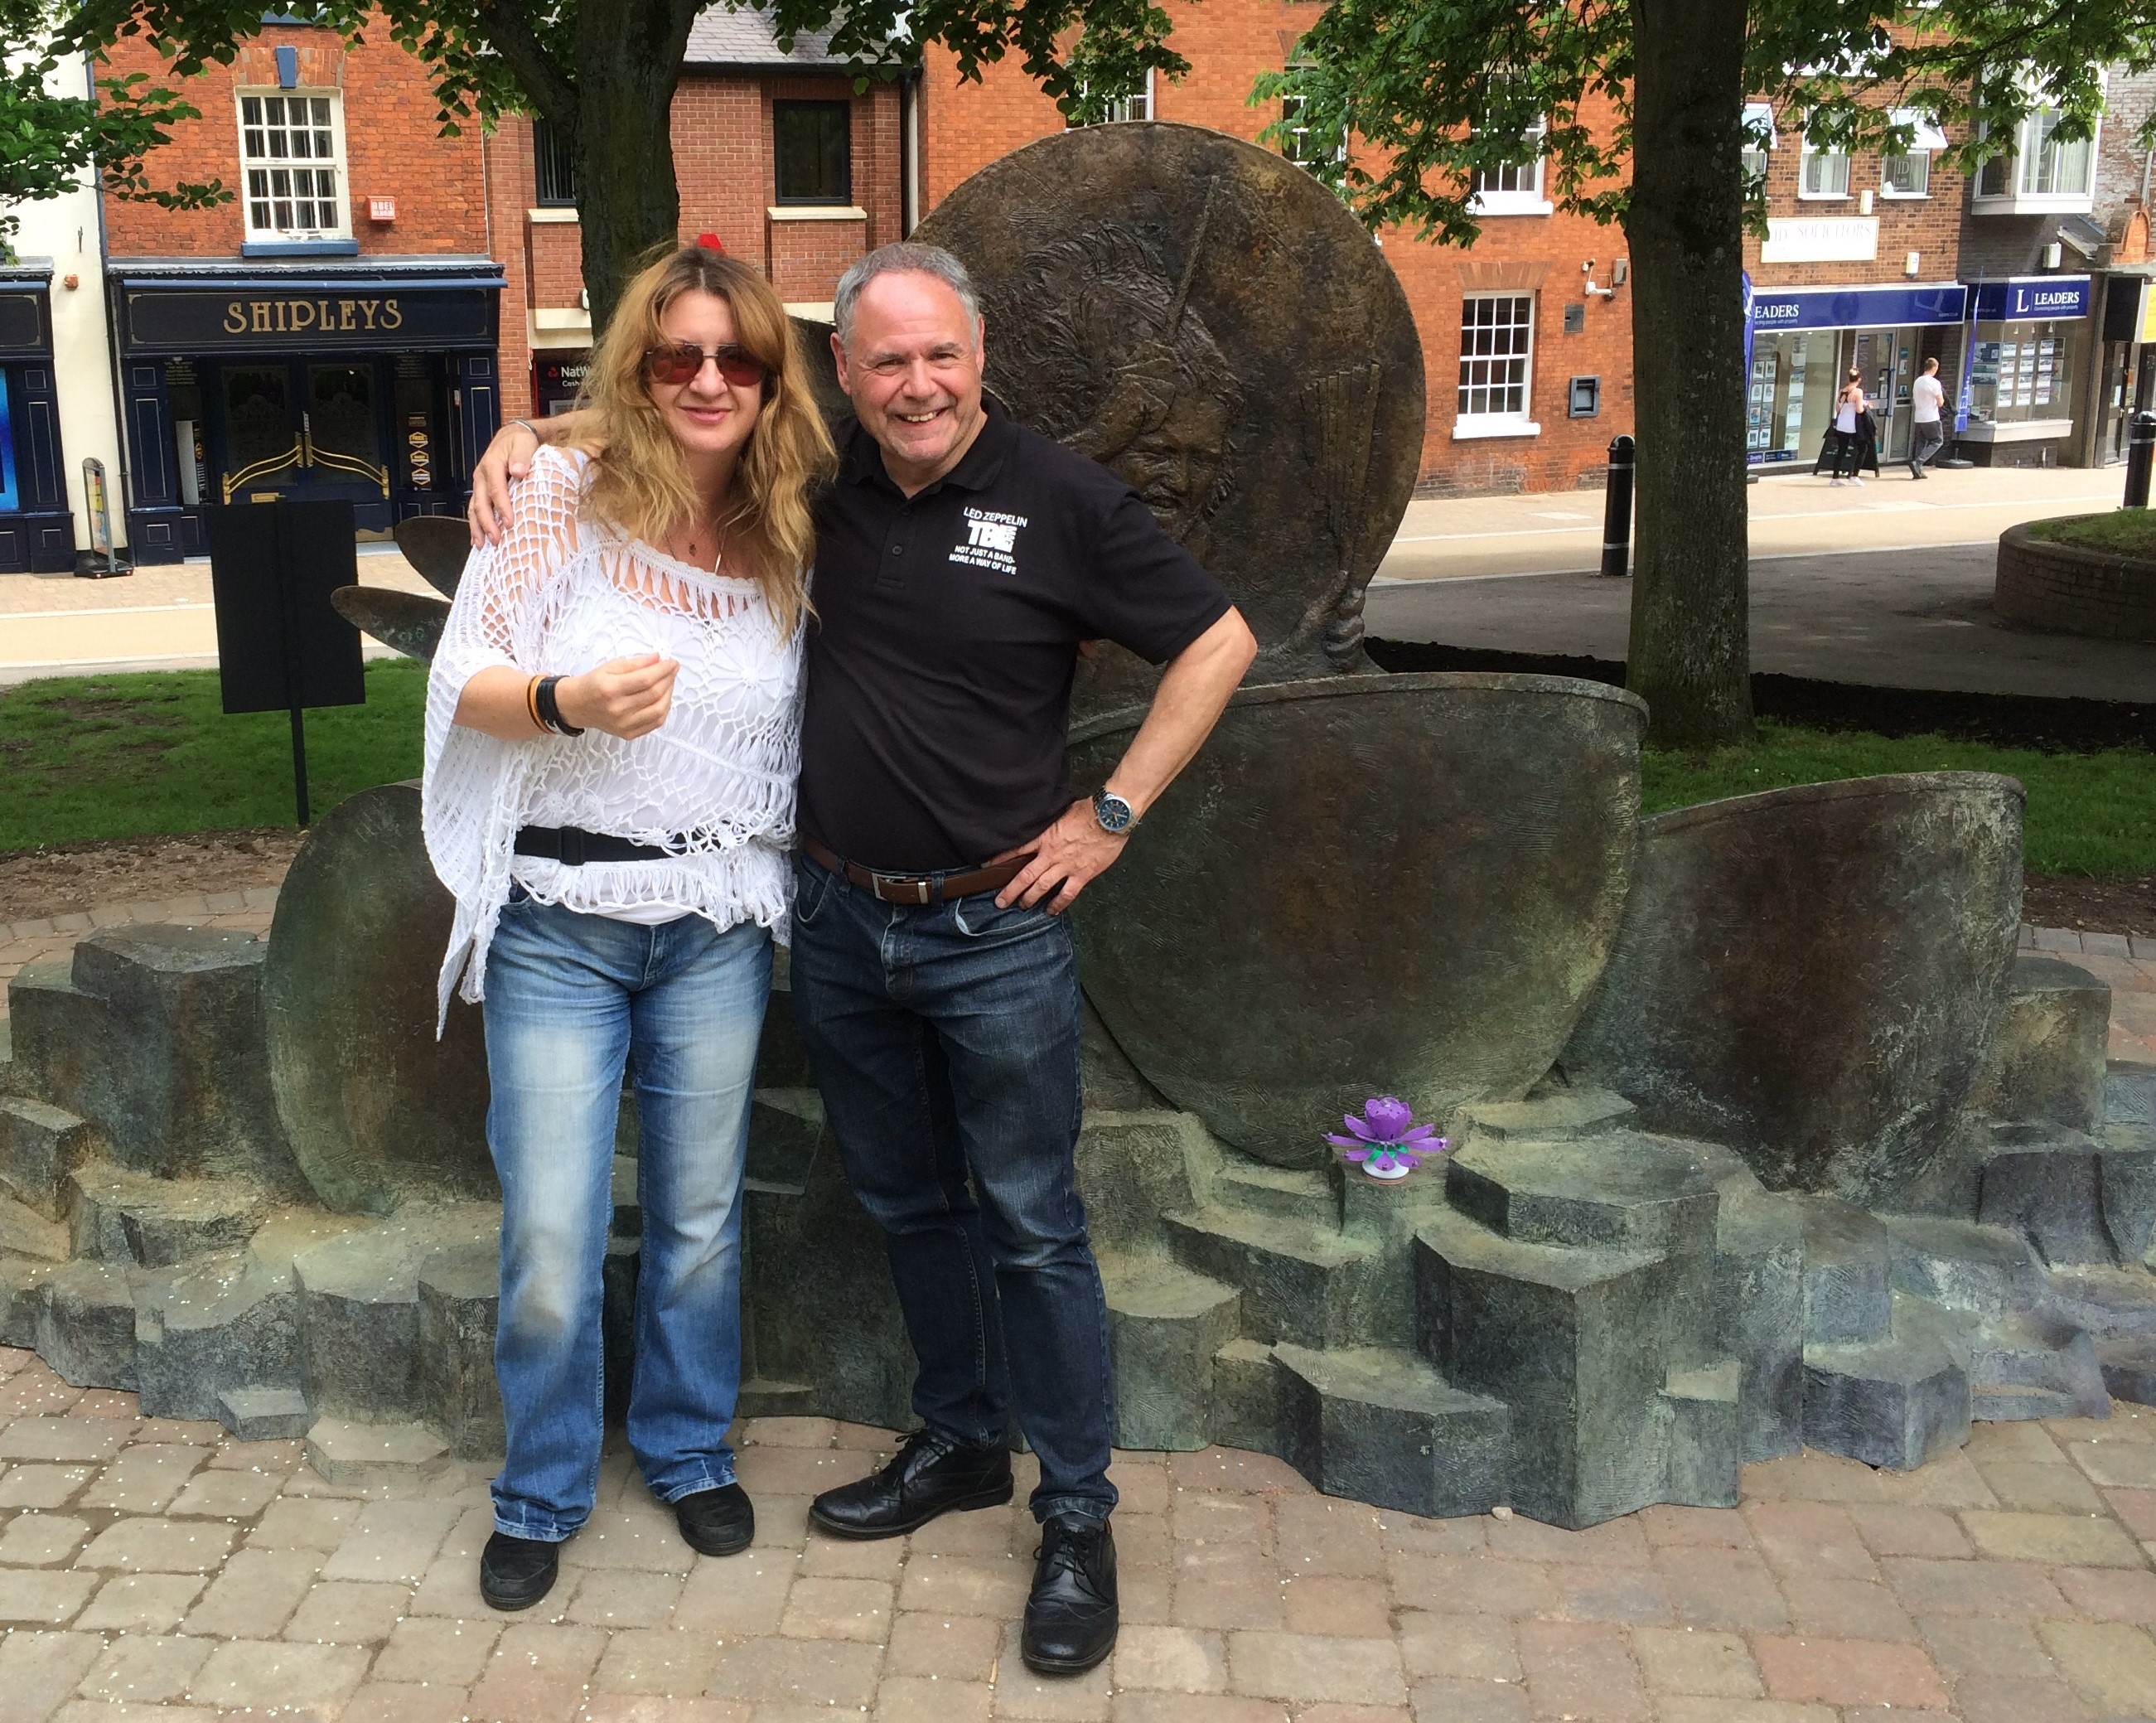 Single and sober dating redditch borough